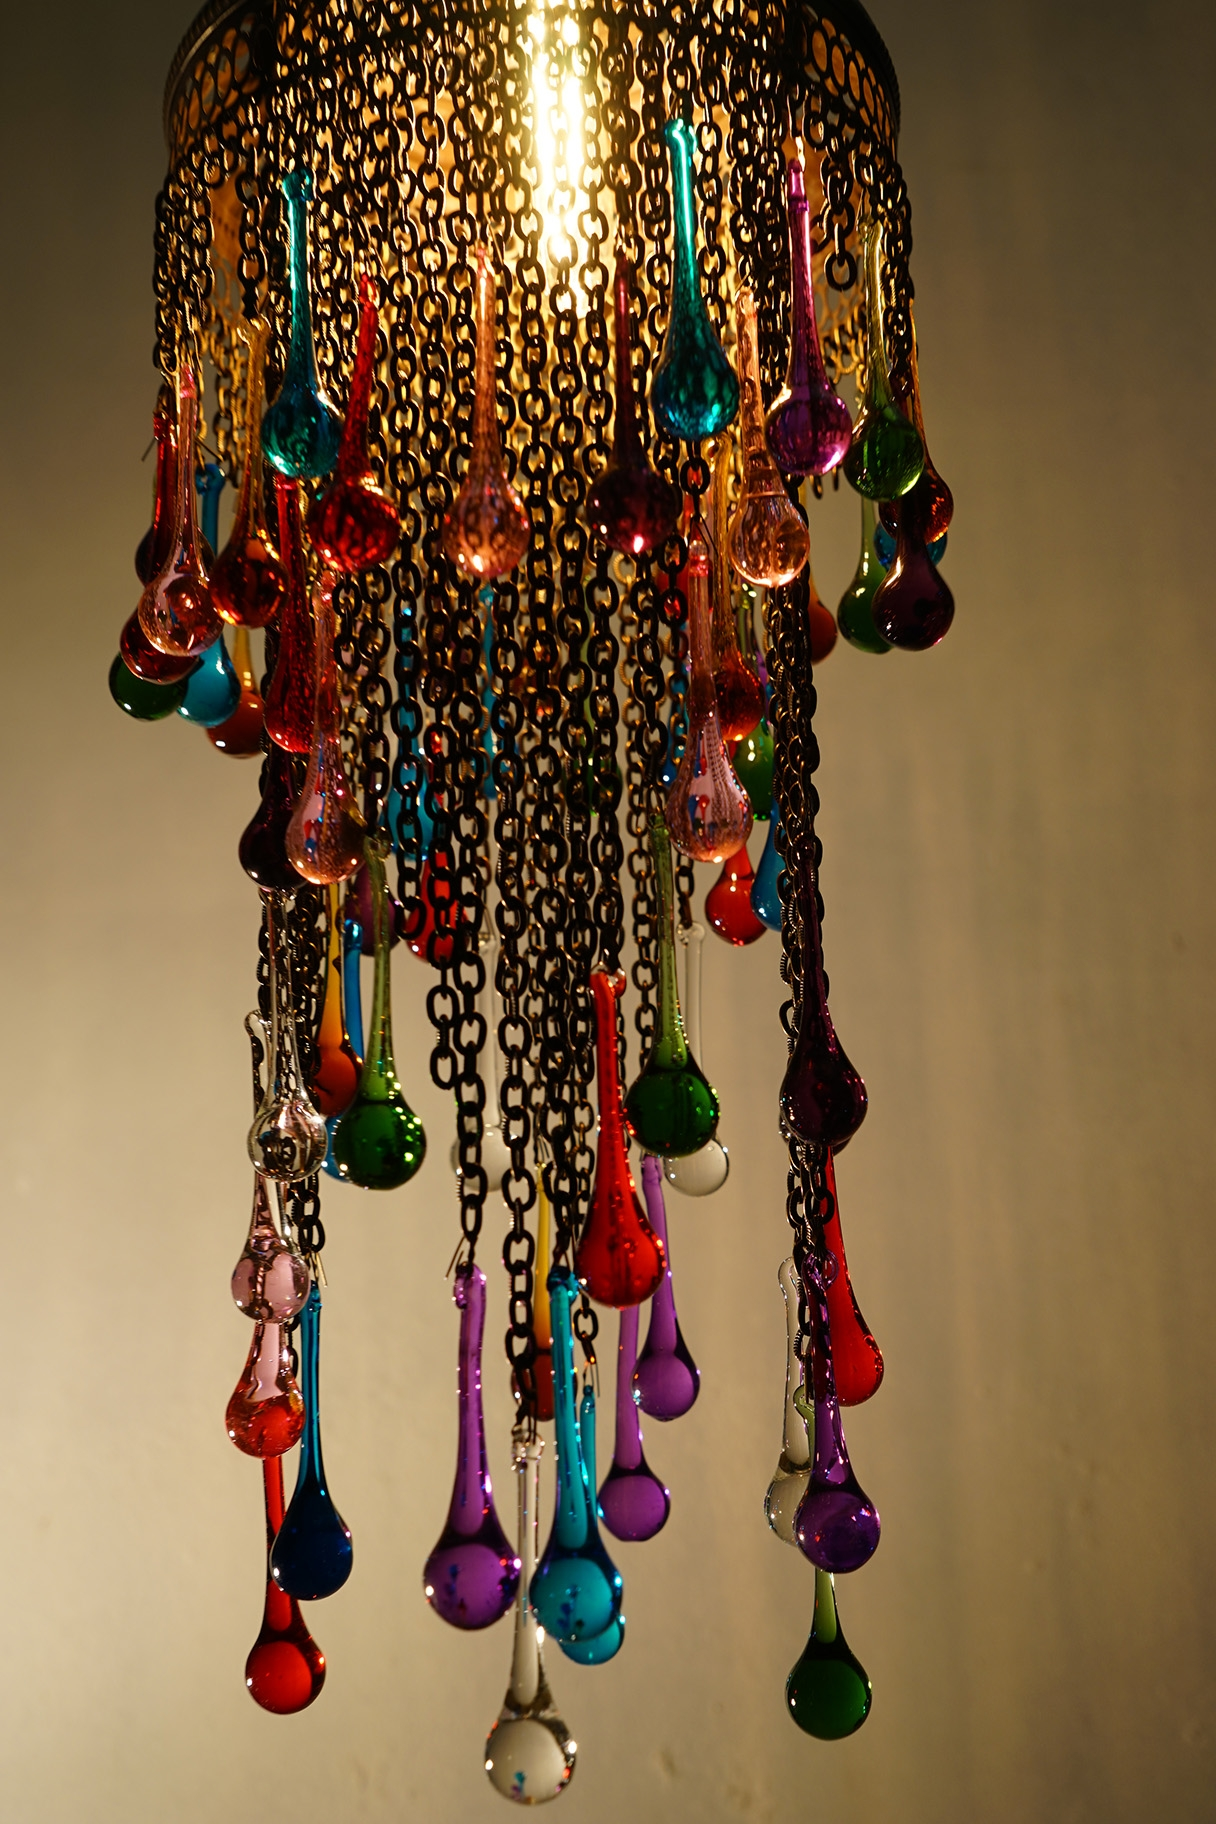 Coloured Glass Tear Drop Chandelier The Dancing Pixie Intended For Coloured Glass Chandelier (Image 4 of 15)